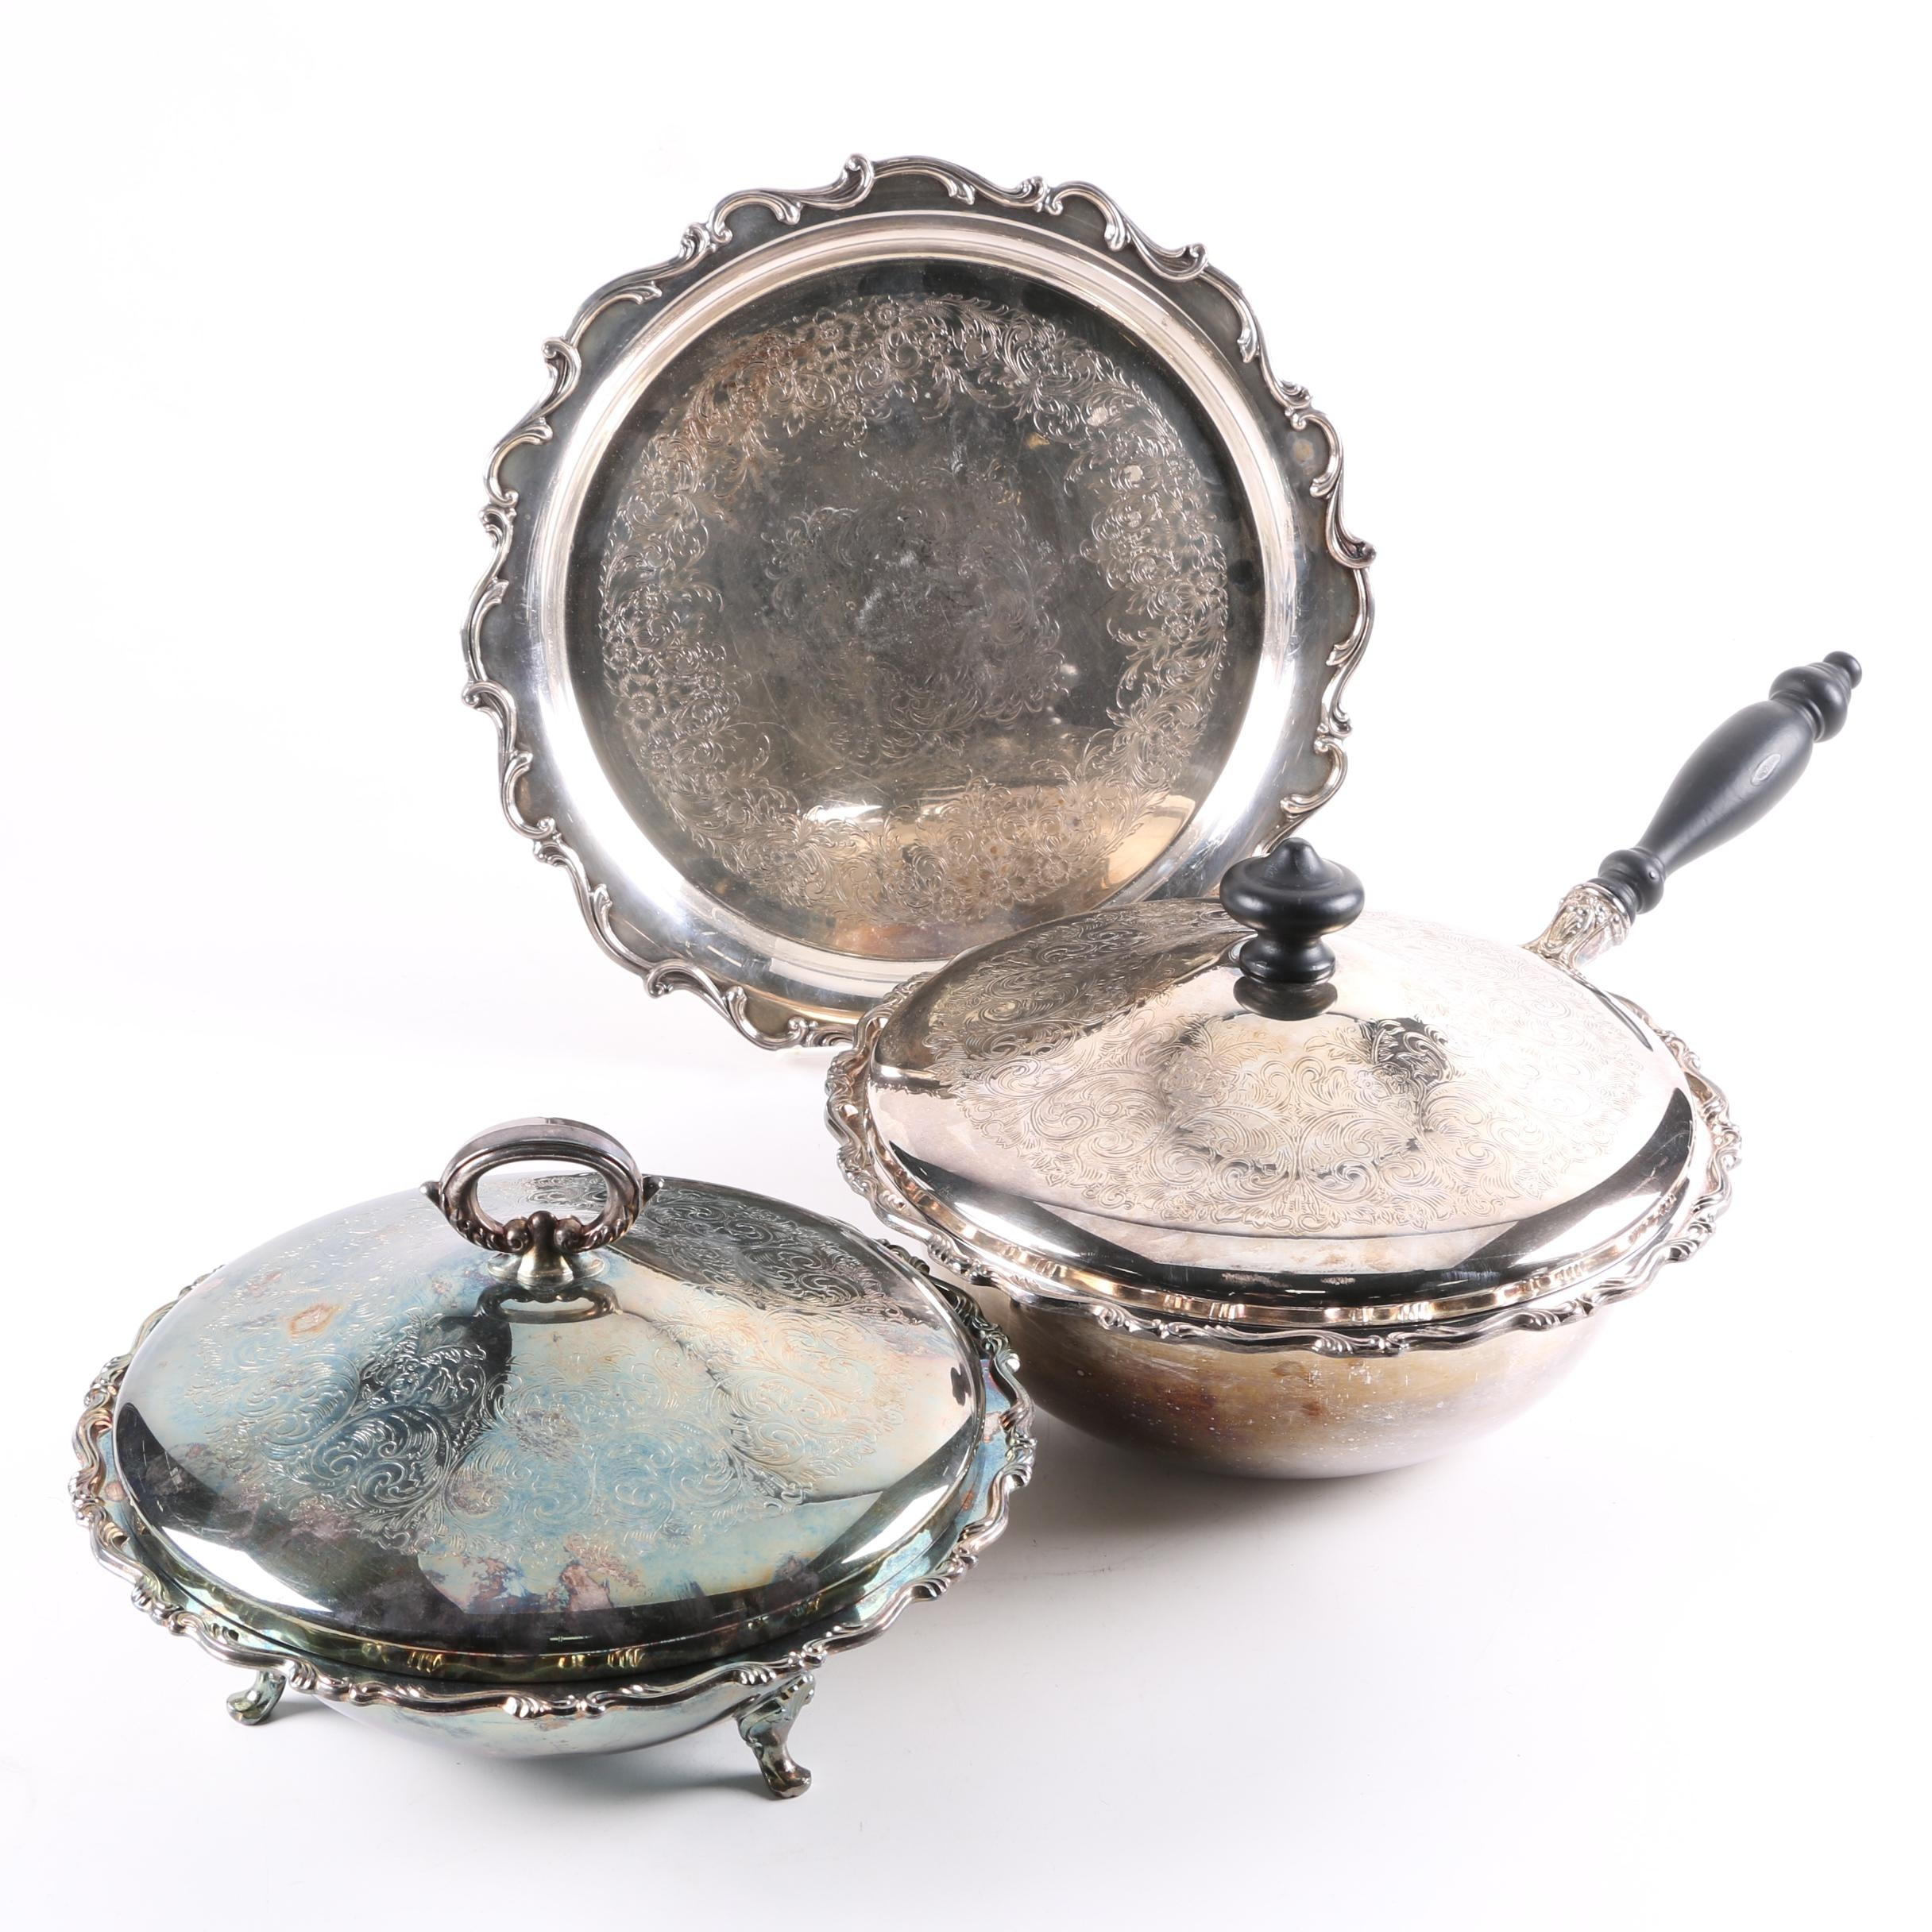 Silver Plate Platter, Chafing Dish, and Lidded Bowl